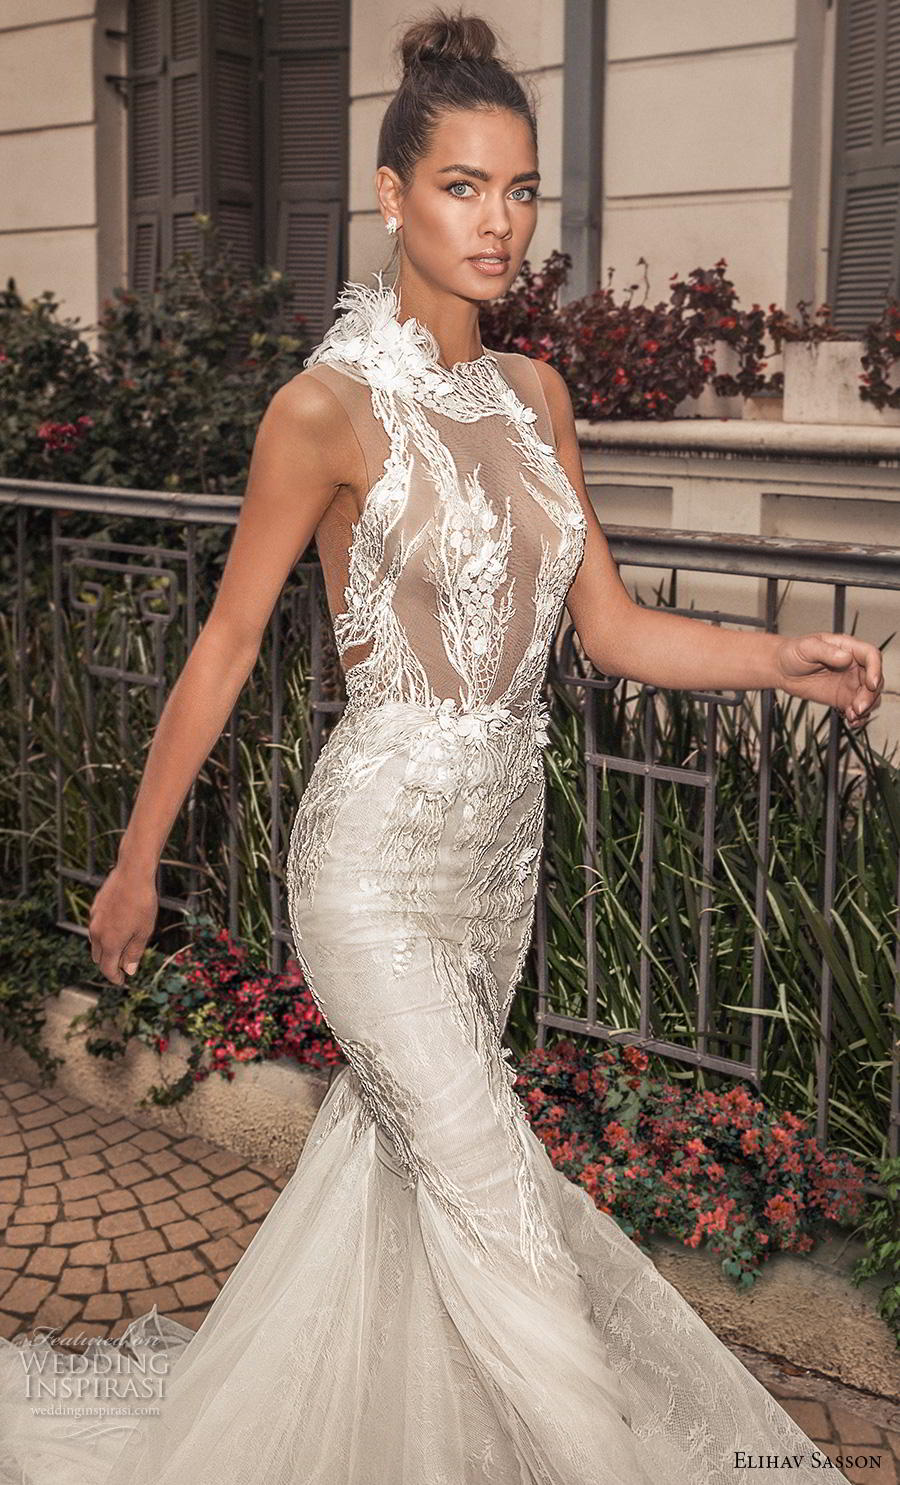 elihav sasson 2019 bridal sleeveless halter neck heavily embellished bodice elegant mermaid wedding dress keyhole back chapel train (19) mv zv